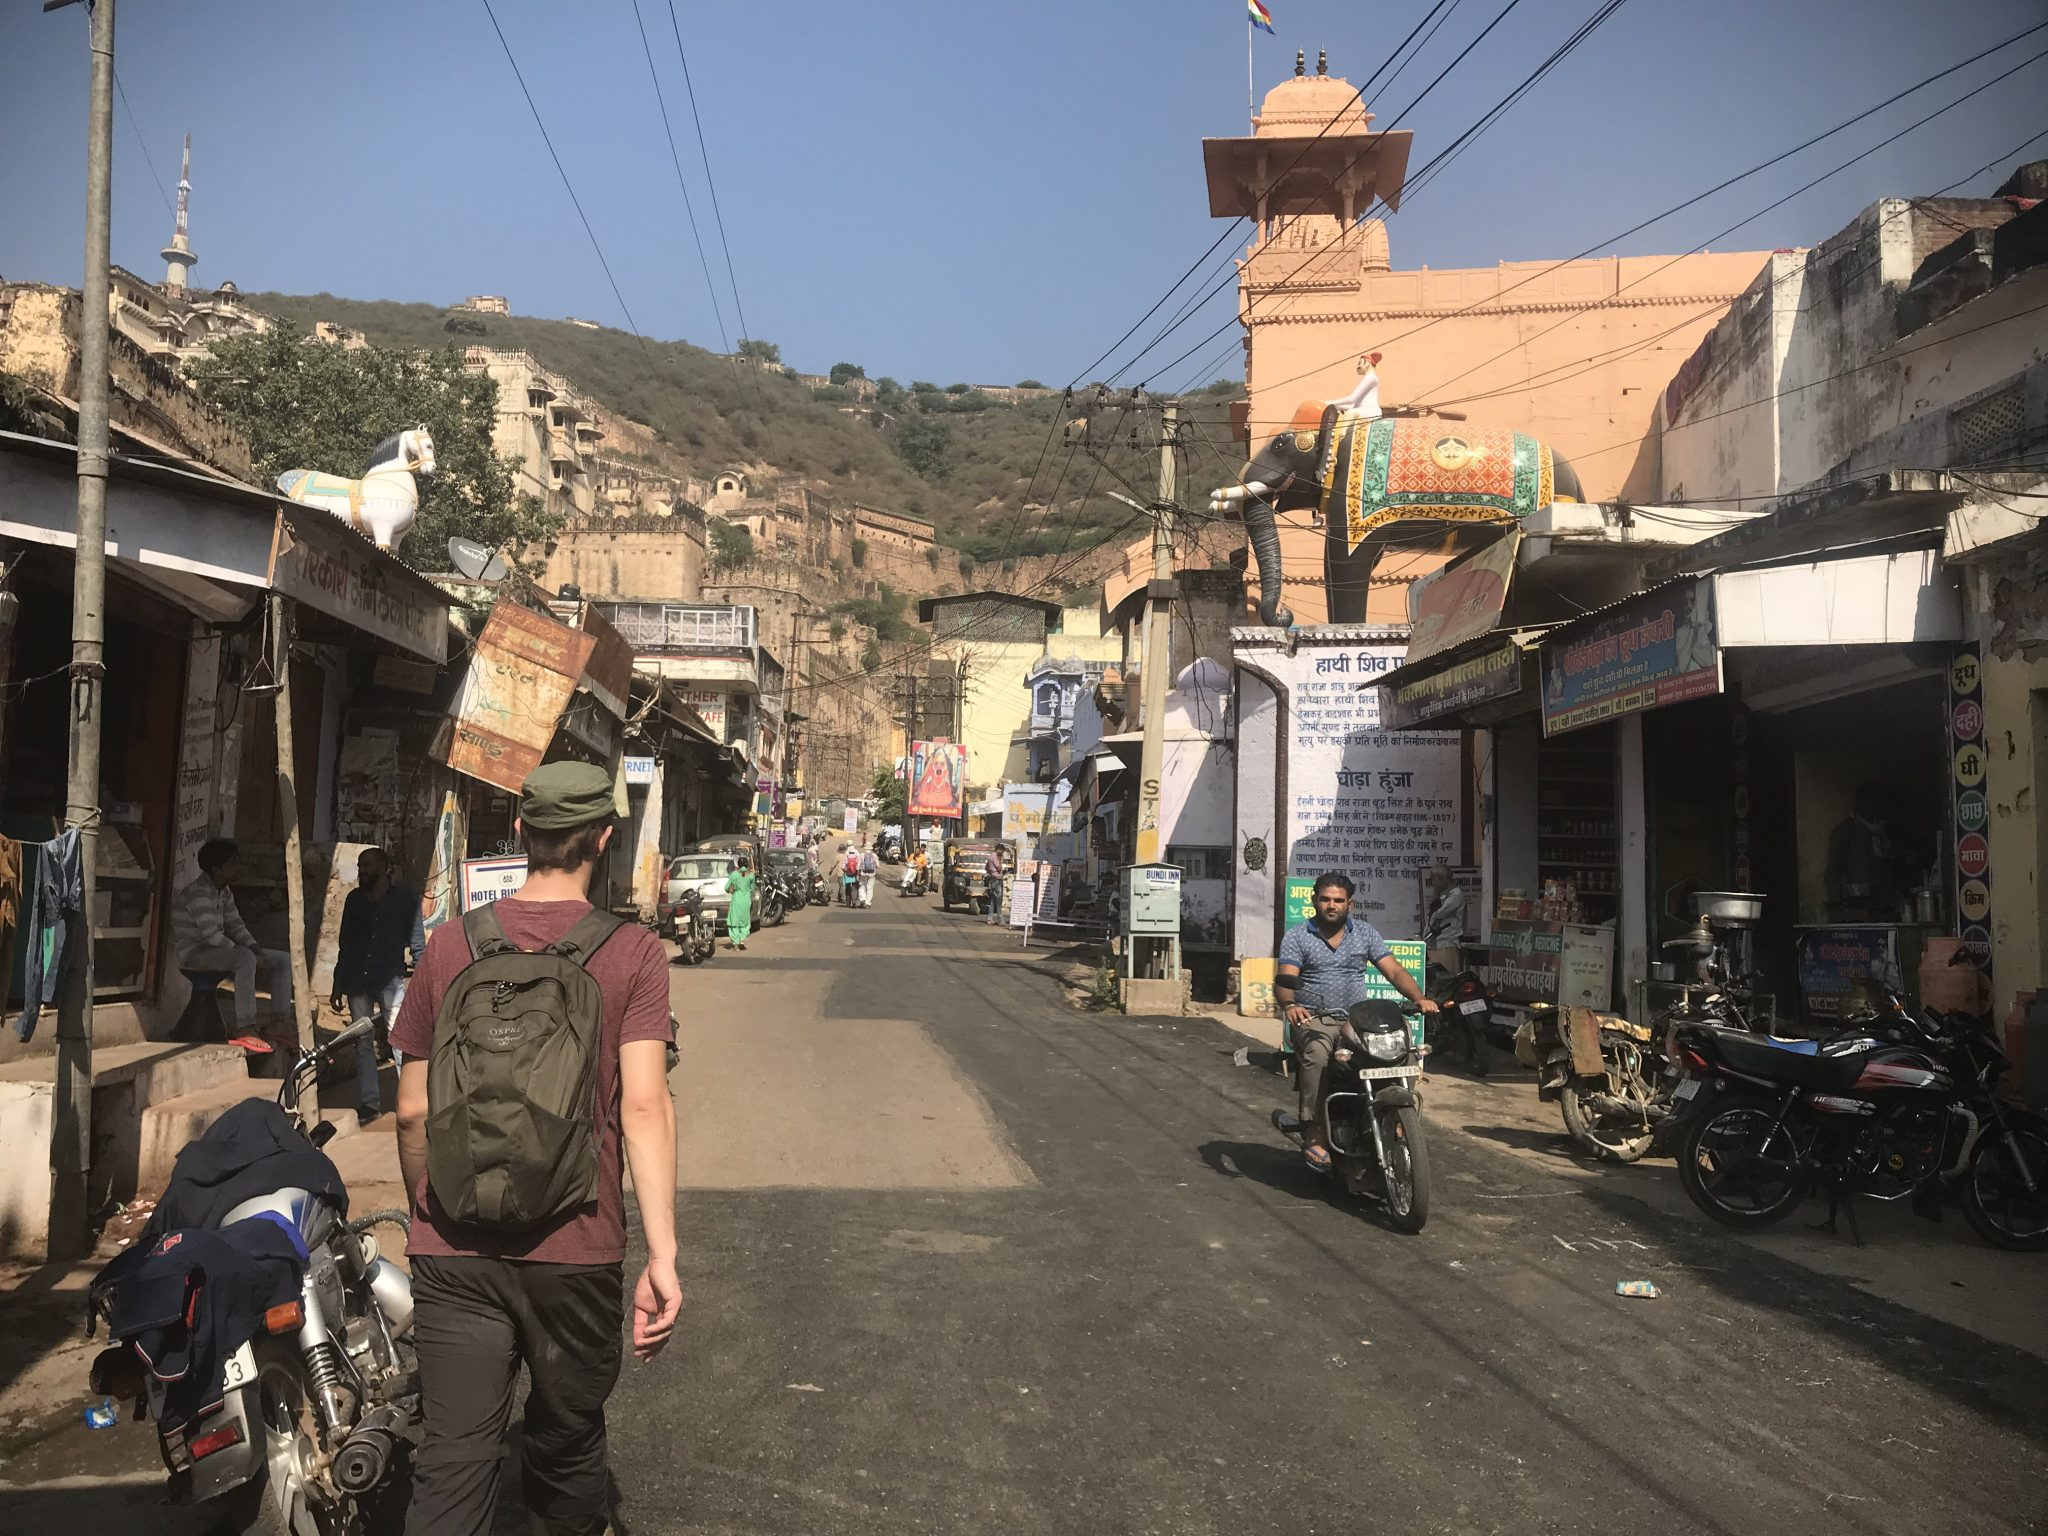 The backpacker district of Bundi